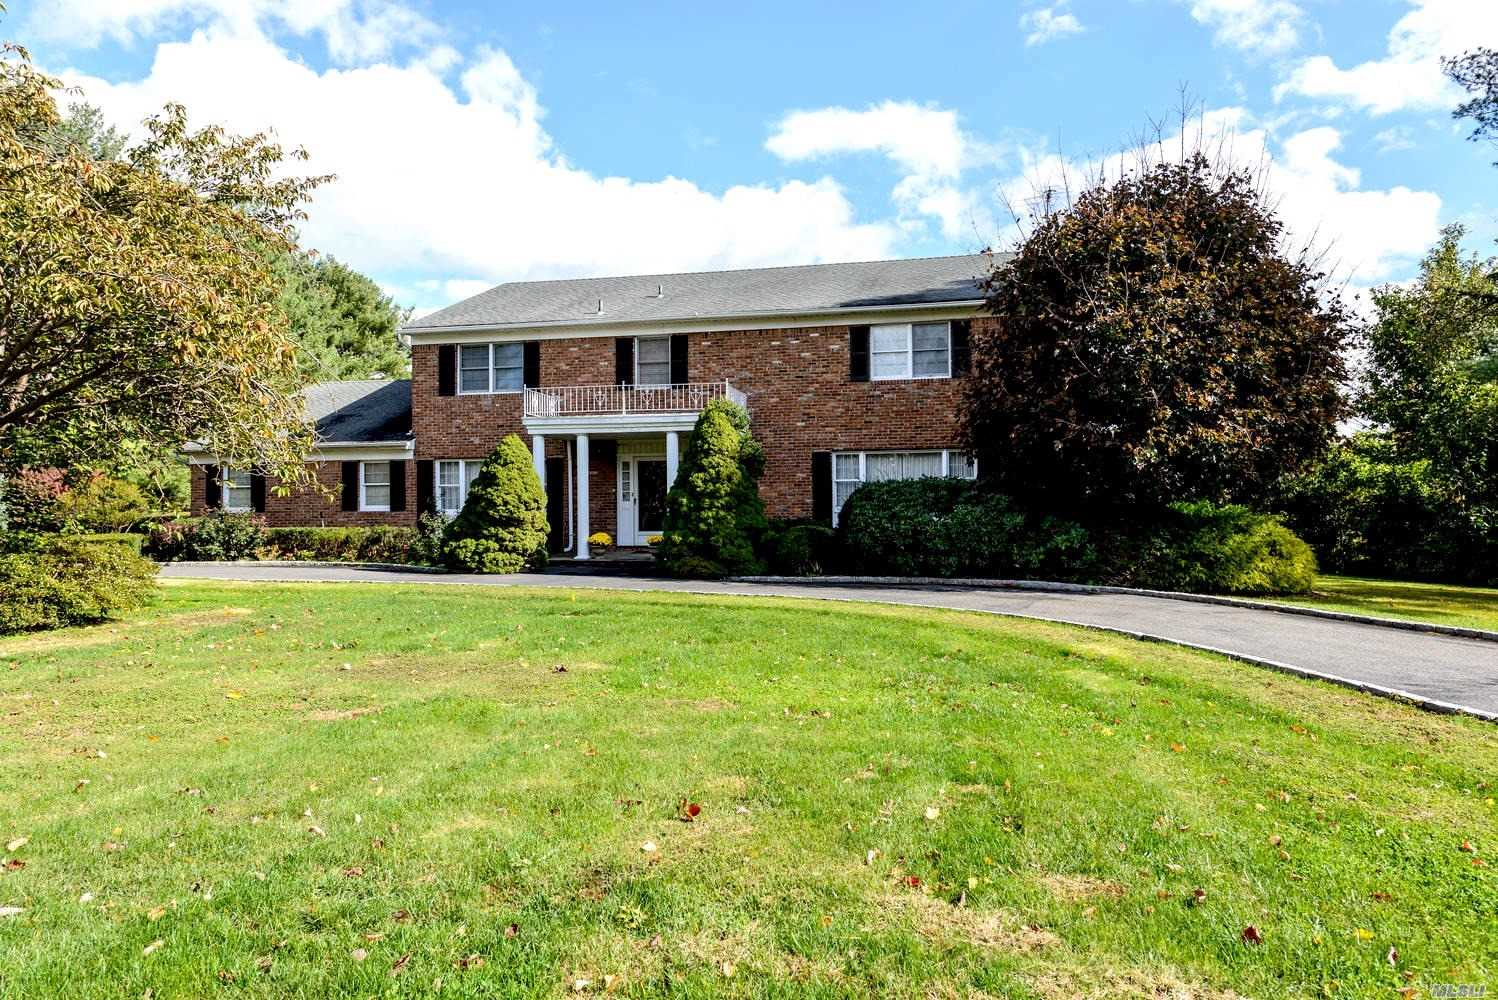 One Of Old Brookville's Sought After Locations! This 5 Bedroom 3.5 Bath Colonial Is Meticulously Maintained And Set On Level 2 Acres. The Home Offers Spacious Living Spaces, Wood Floors Throughout And Room To Grow. The Serene And Private Cul-De-Sac Setting Is Convenient To Schools, Transportation And Shopping. Low Taxes!